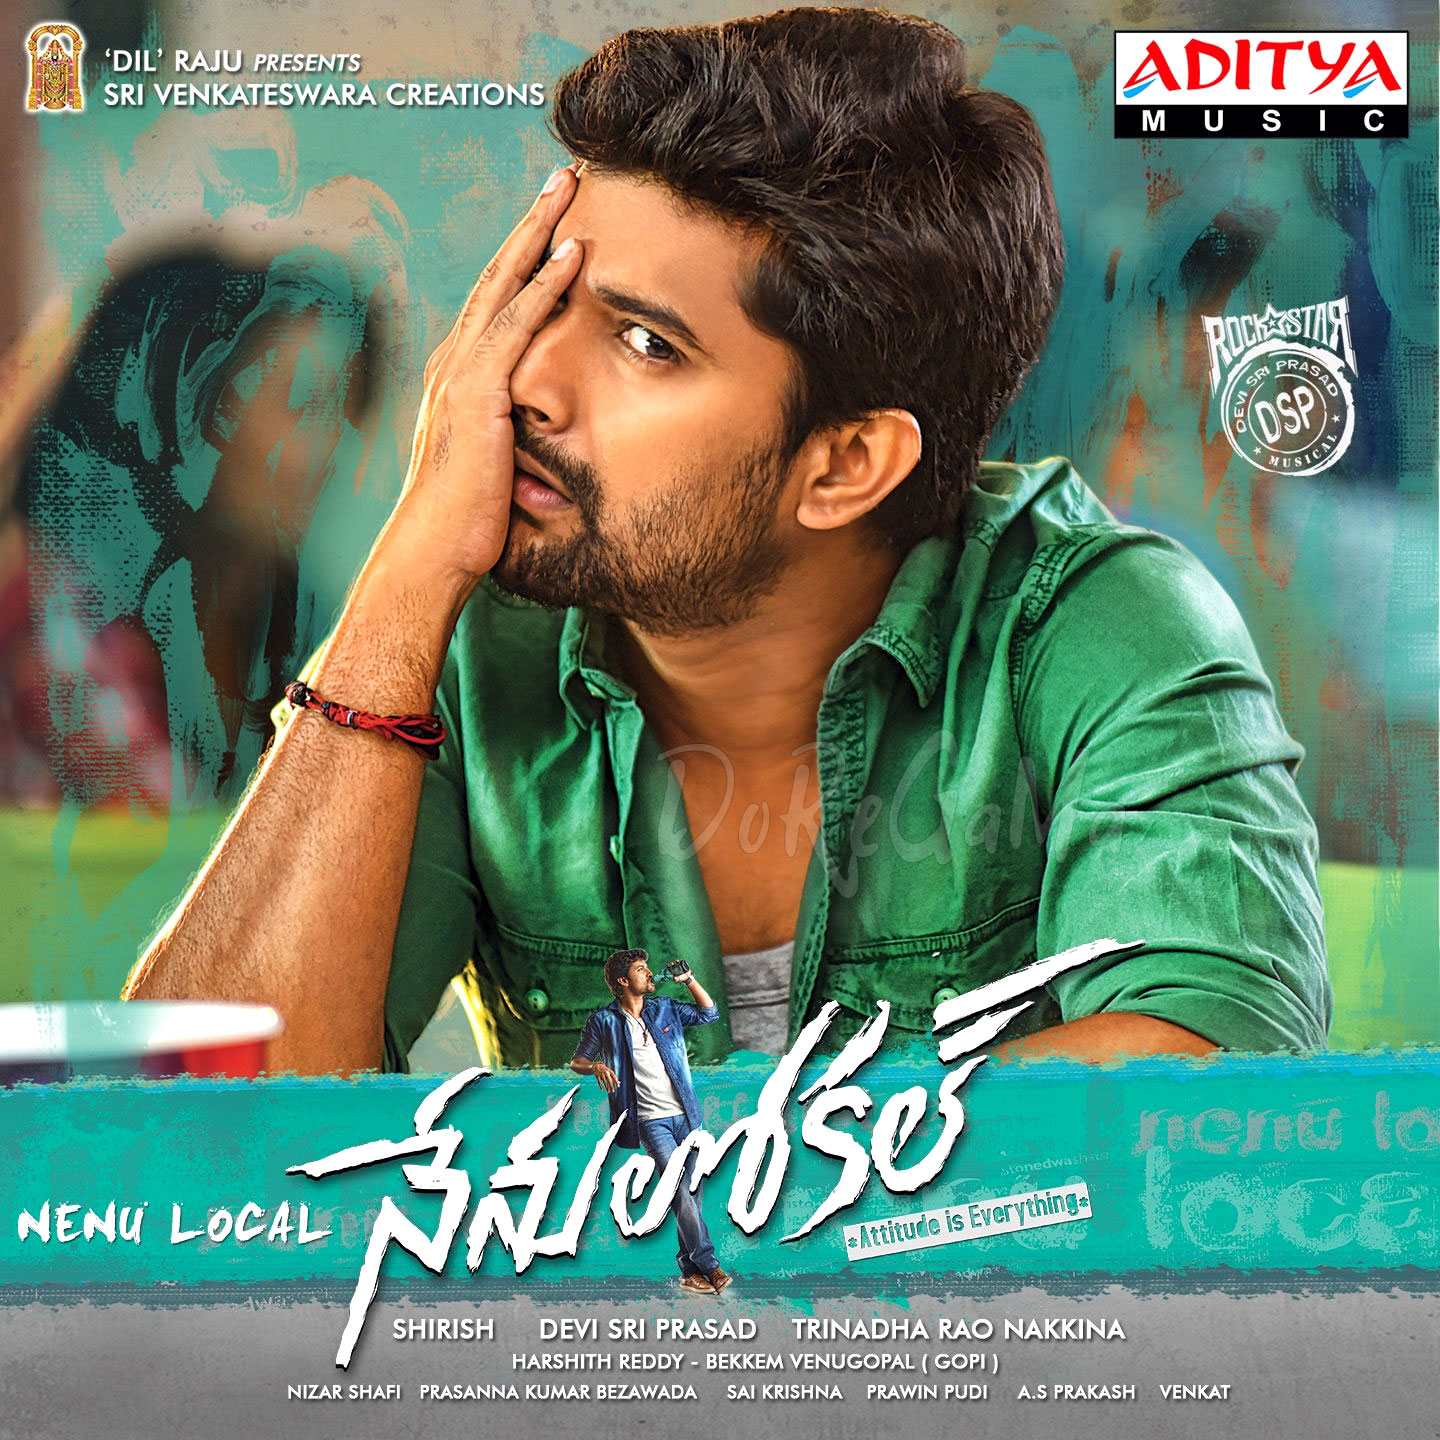 Nenu-Local-2017-Original-CD-Front-Cover-HD